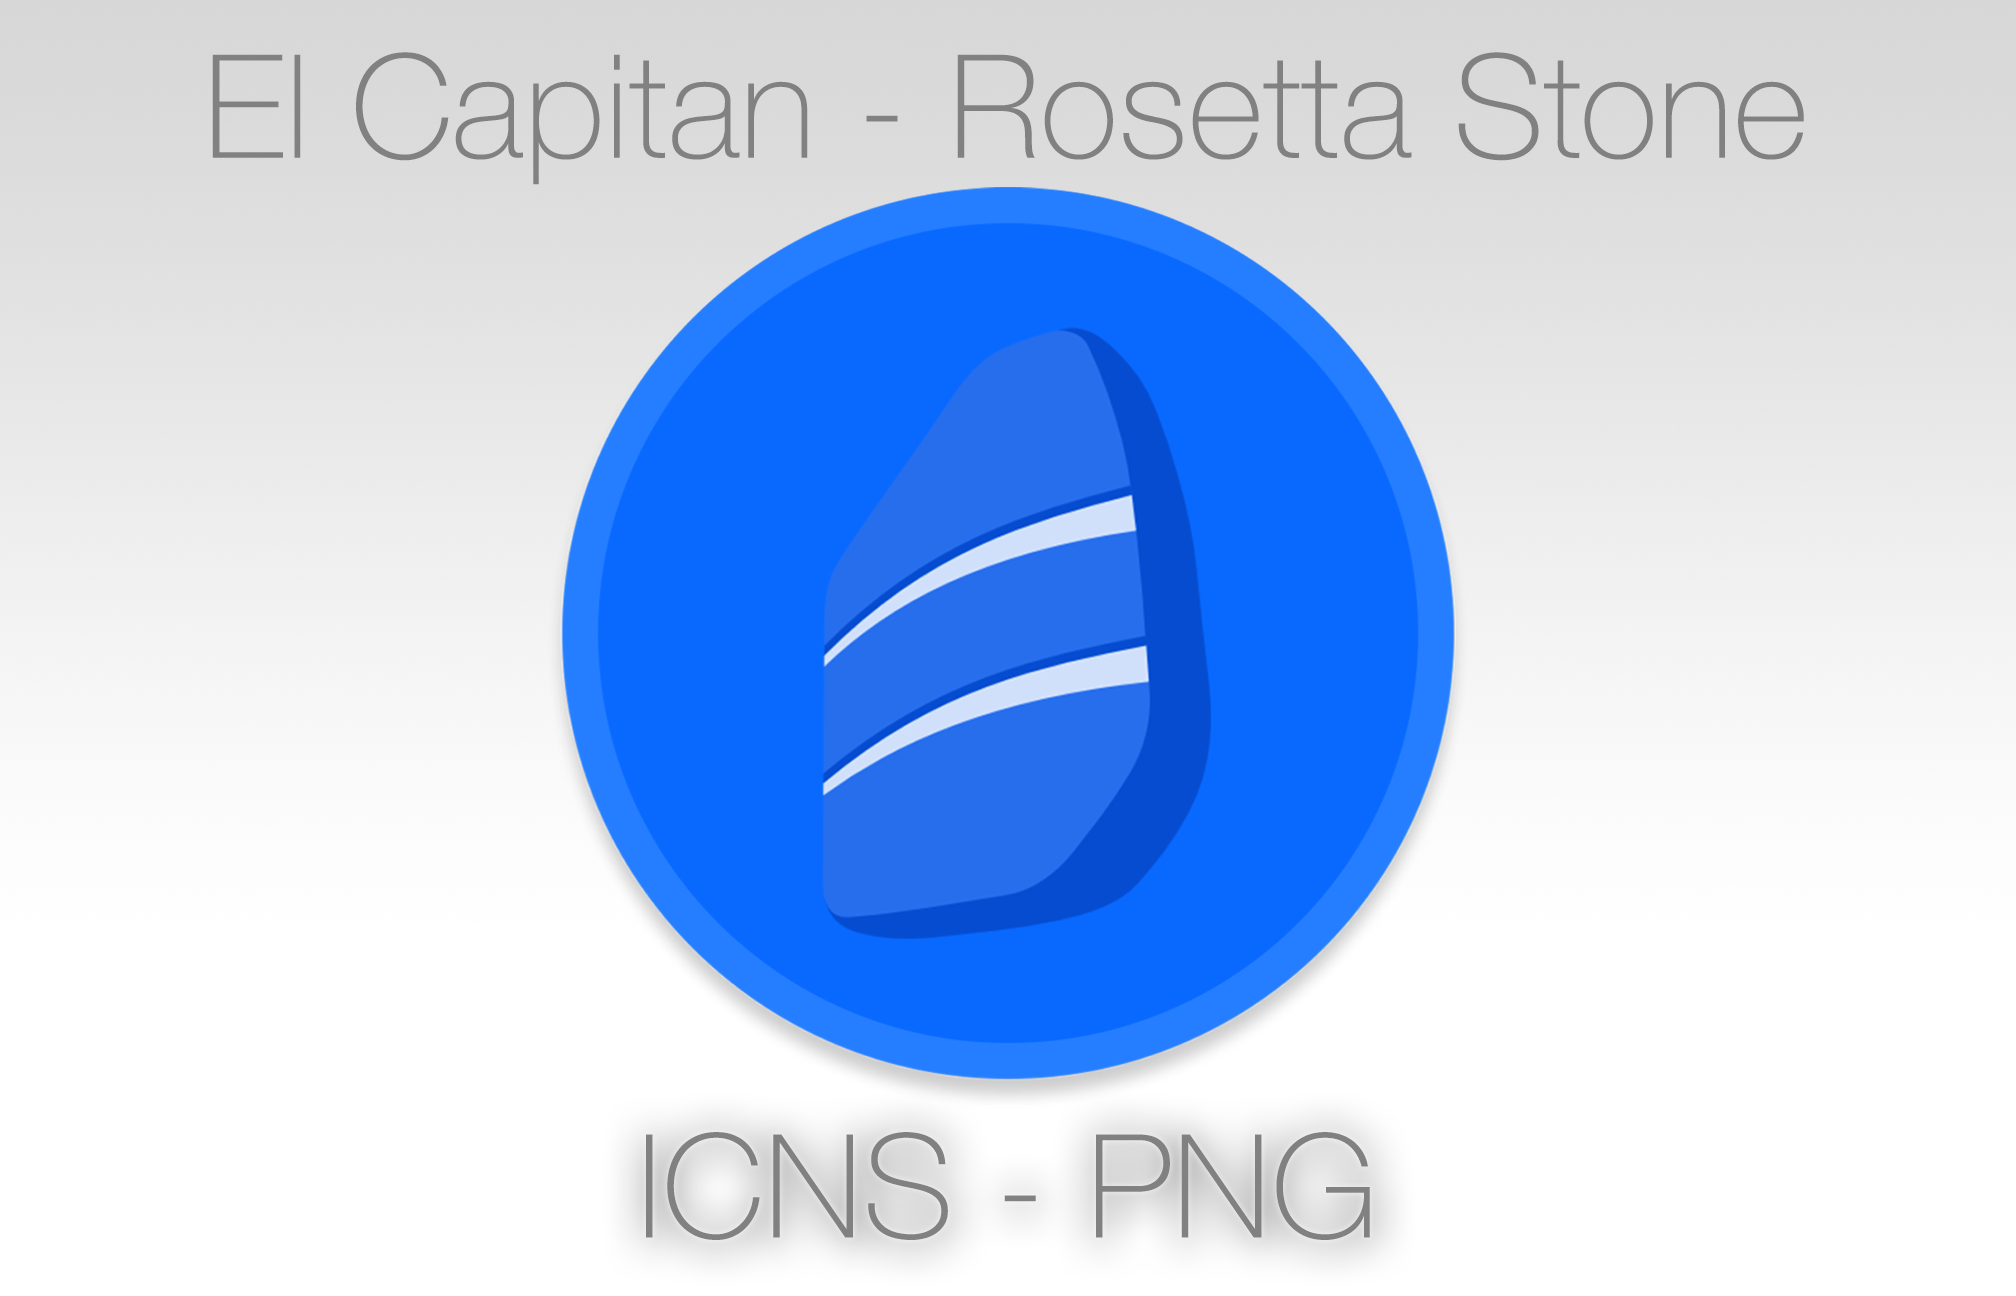 El Capitan - Rosetta Stone Icon by MorphFXF on DeviantArt Rosetta Stone Login